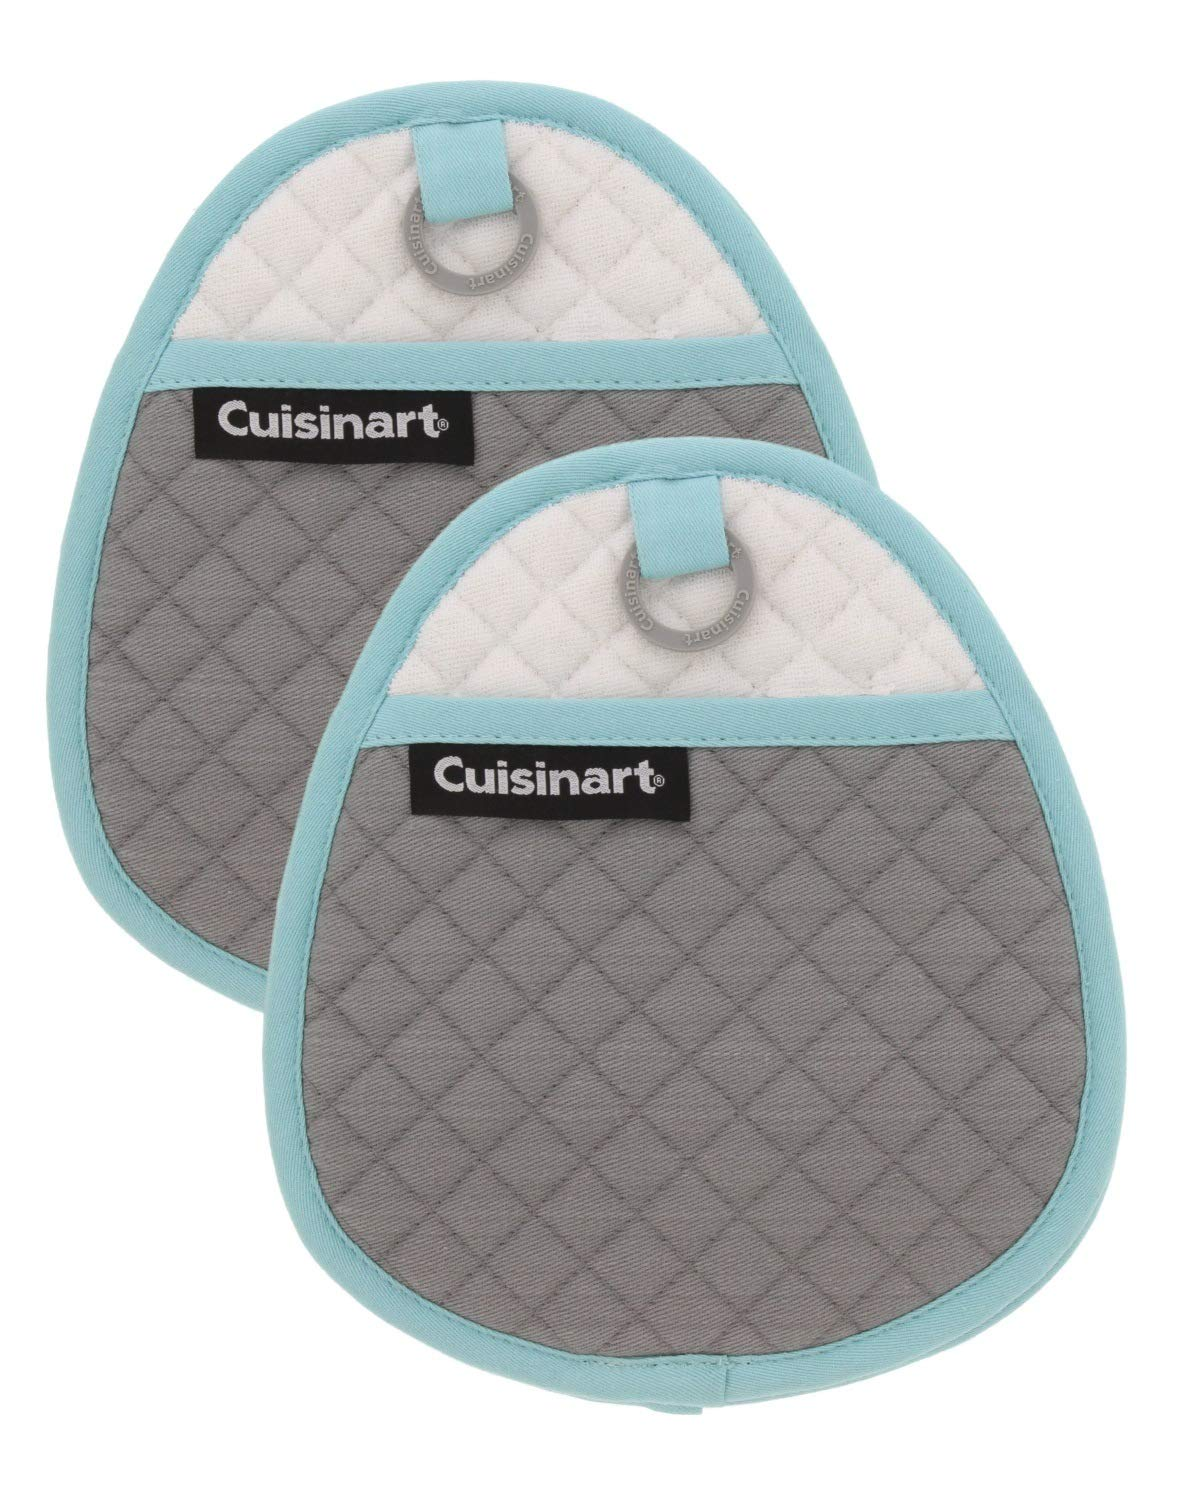 Cuisinart Quilted Silicone Potholders & Oven Mitts - Heat Resistant up to 500° F, Handle Hot Oven/Cooking Items Safely - Soft Insulated Pockets, Non-Slip Grip w/Hanging Loop, Drizzle Grey- 2pk